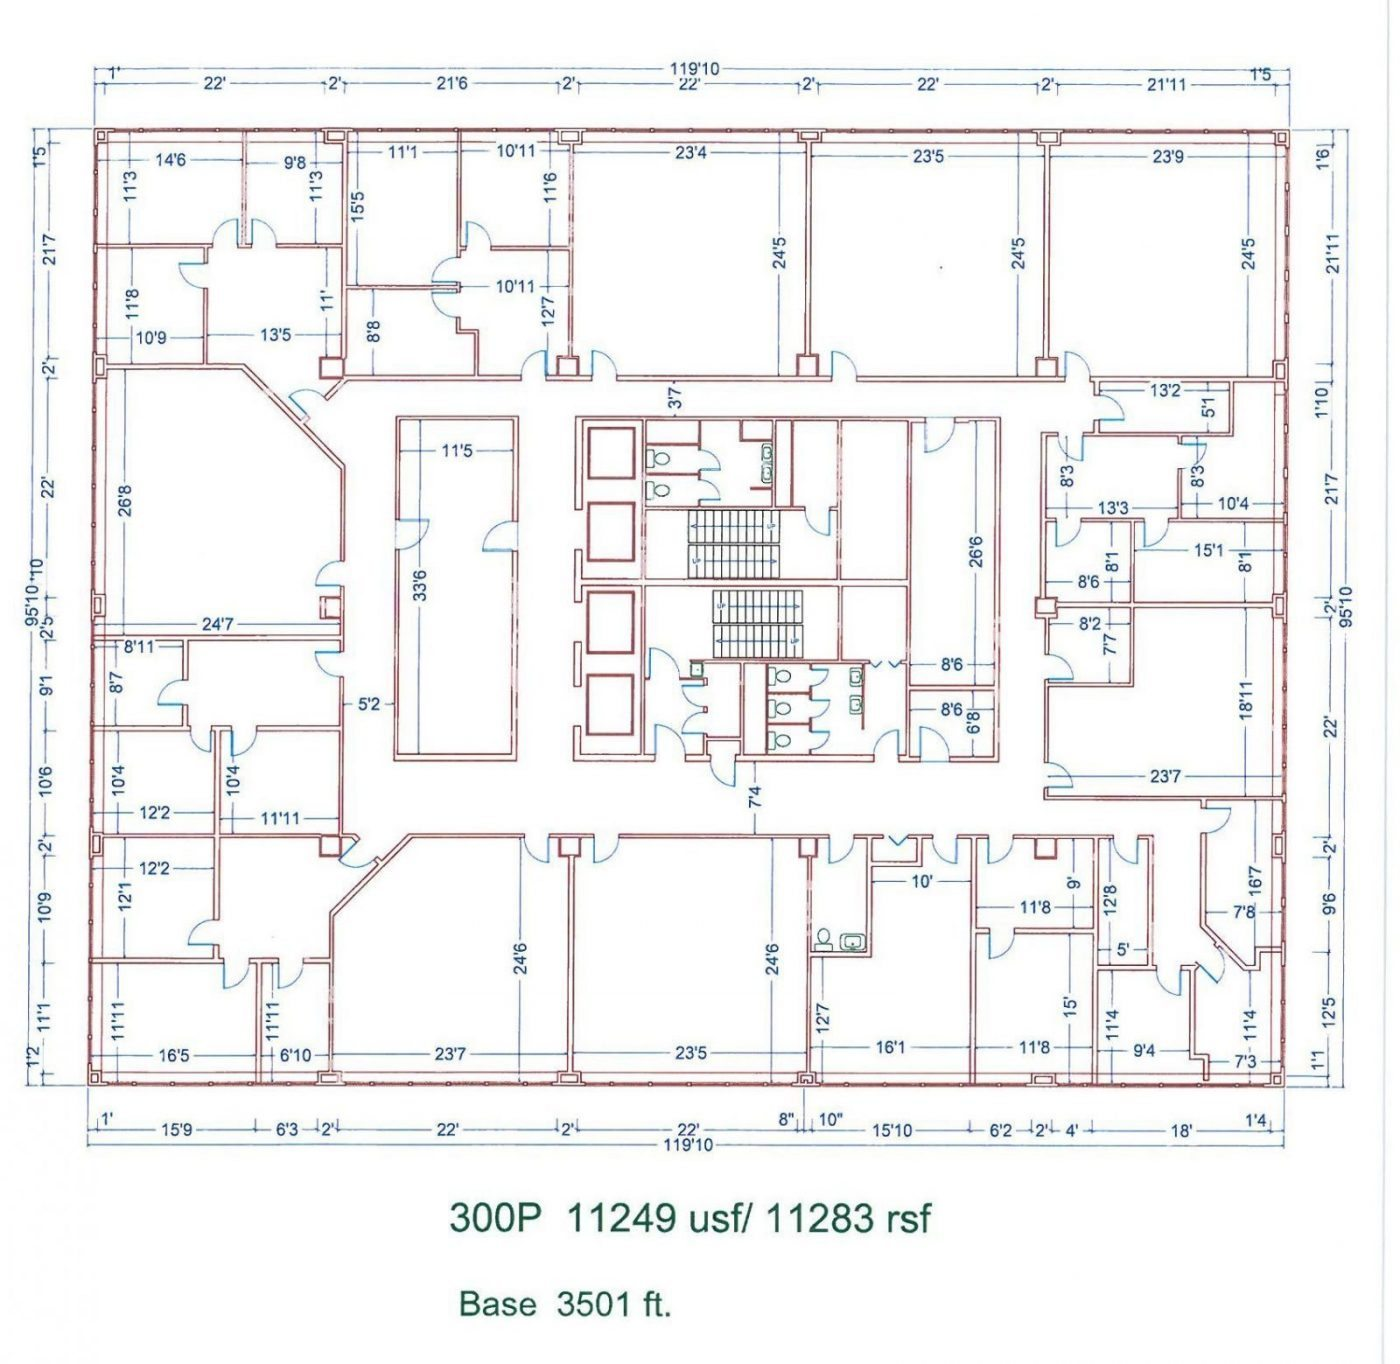 Floor Plan for unit 300P at 20755 Greenfield Rd - 3rd Floor Southfield, MI 48075